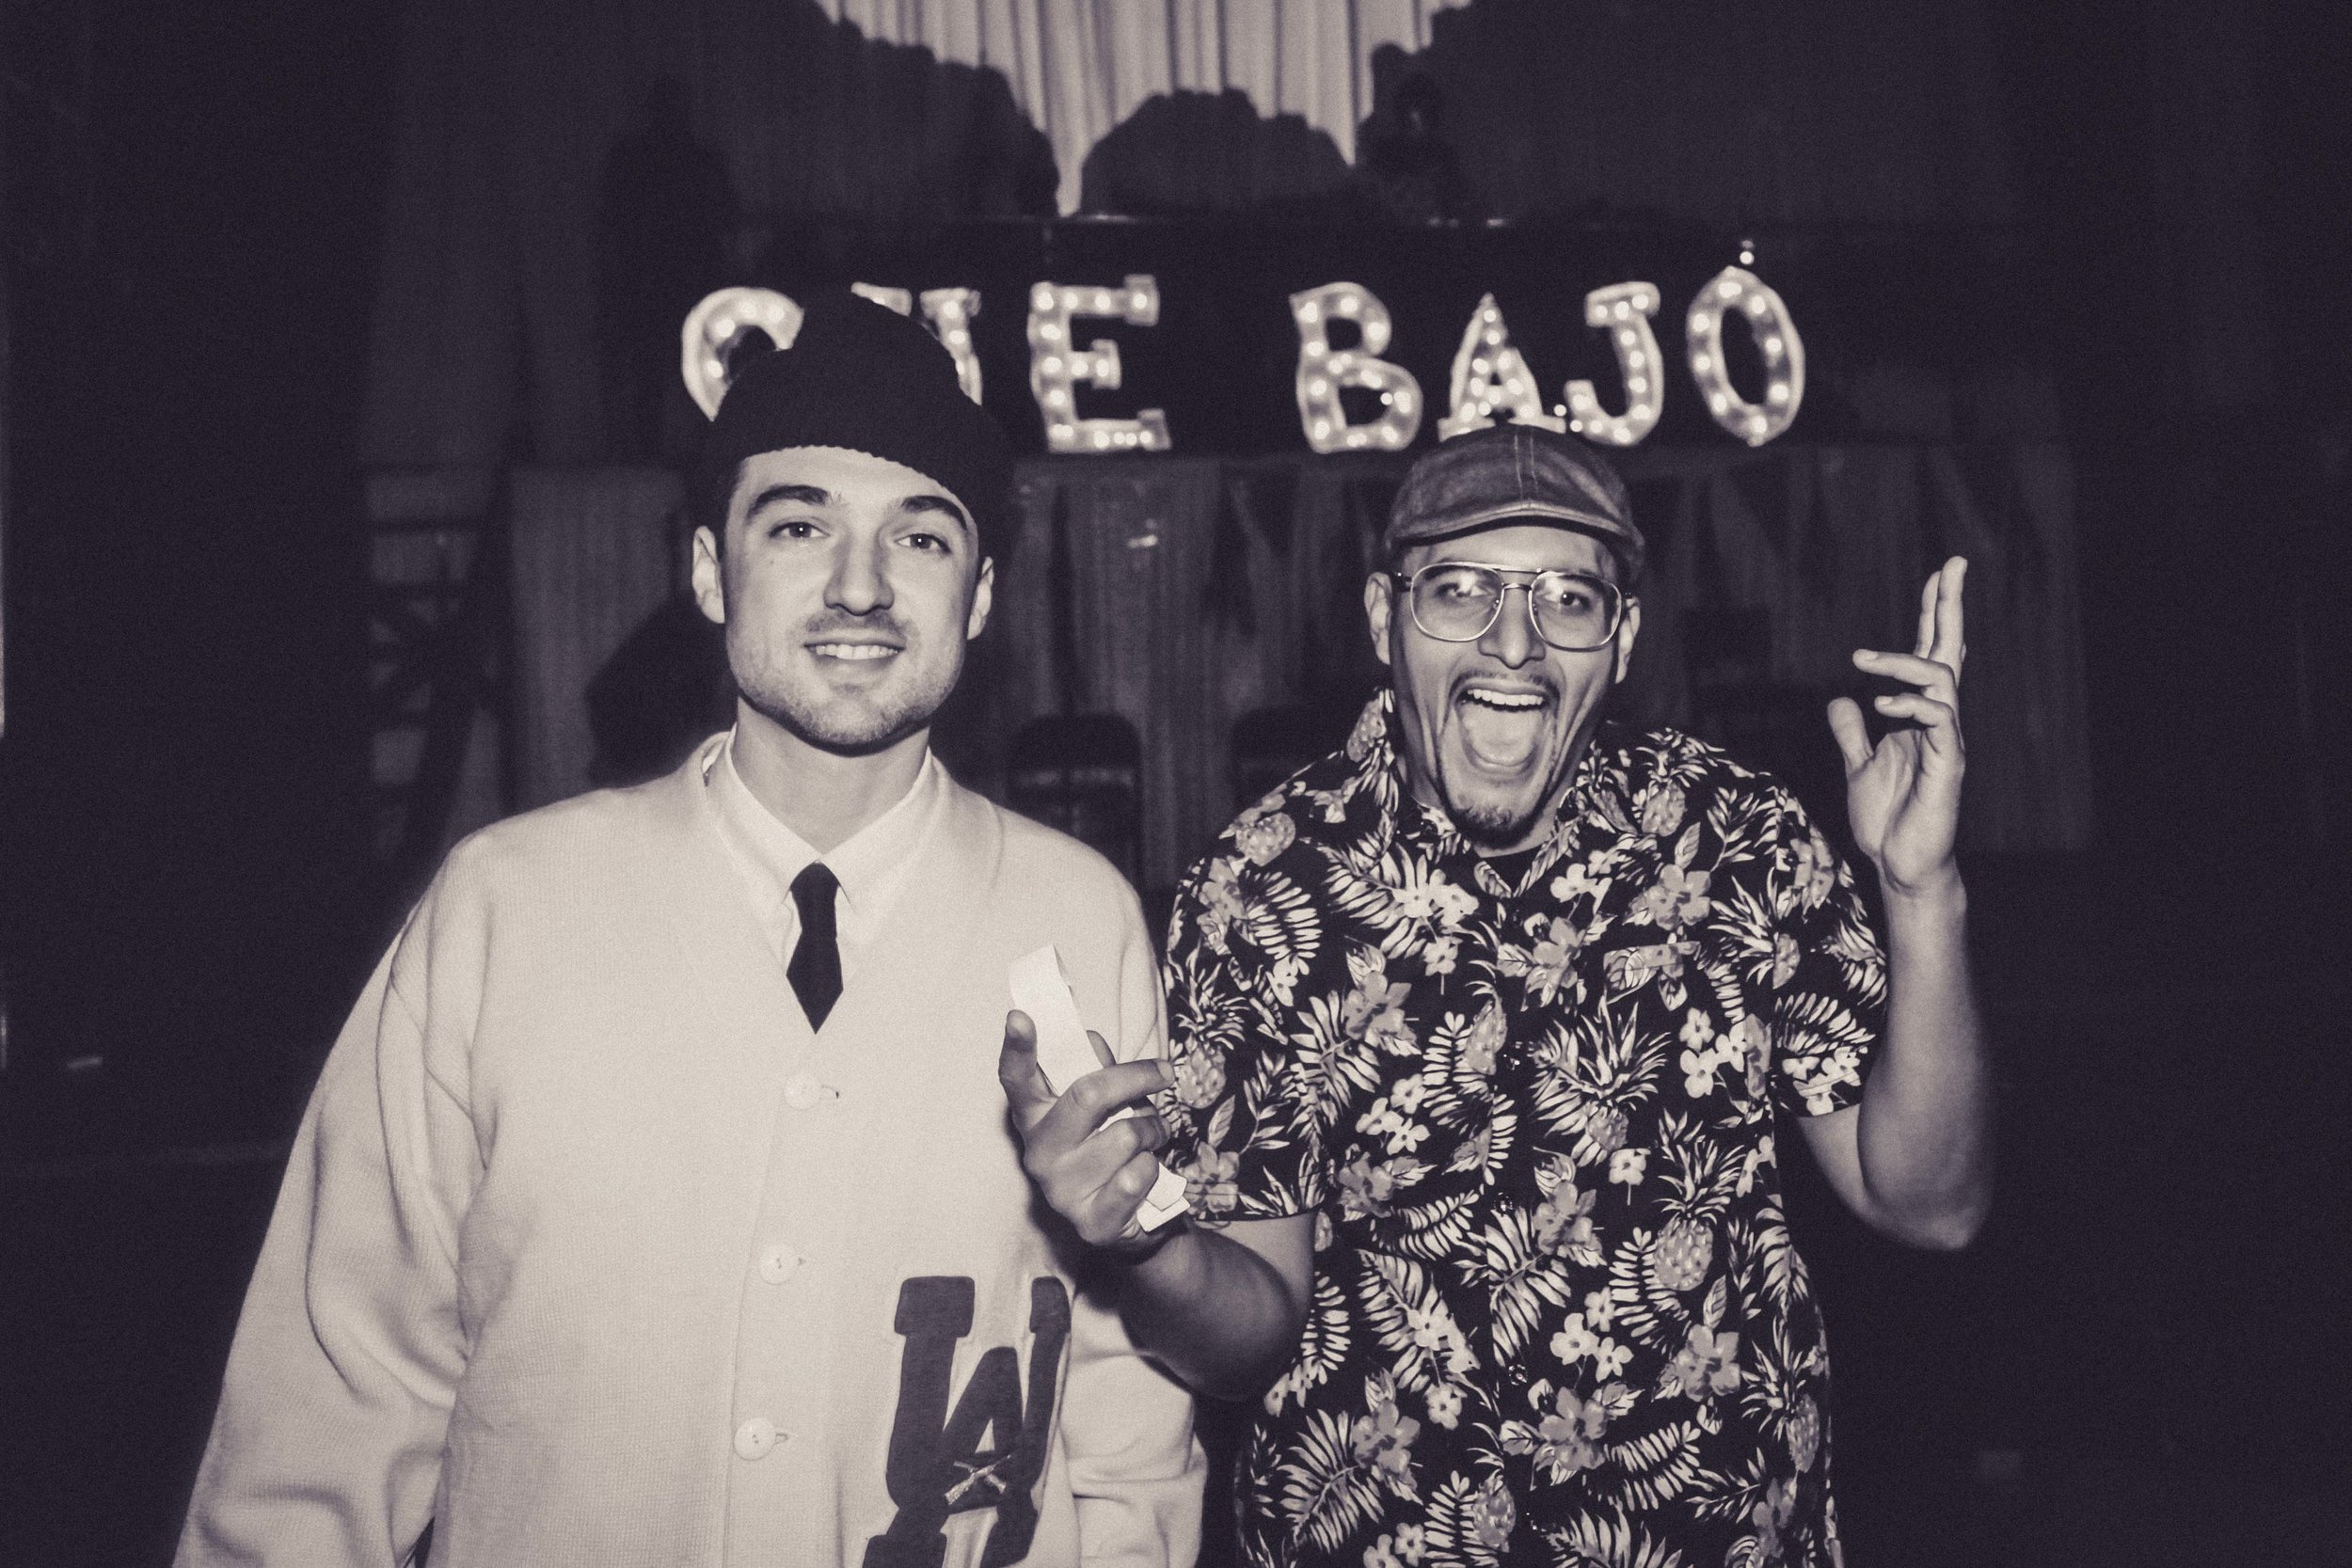 Que Bajo - NY's #1 Tropical Bass Party @ House of Yes